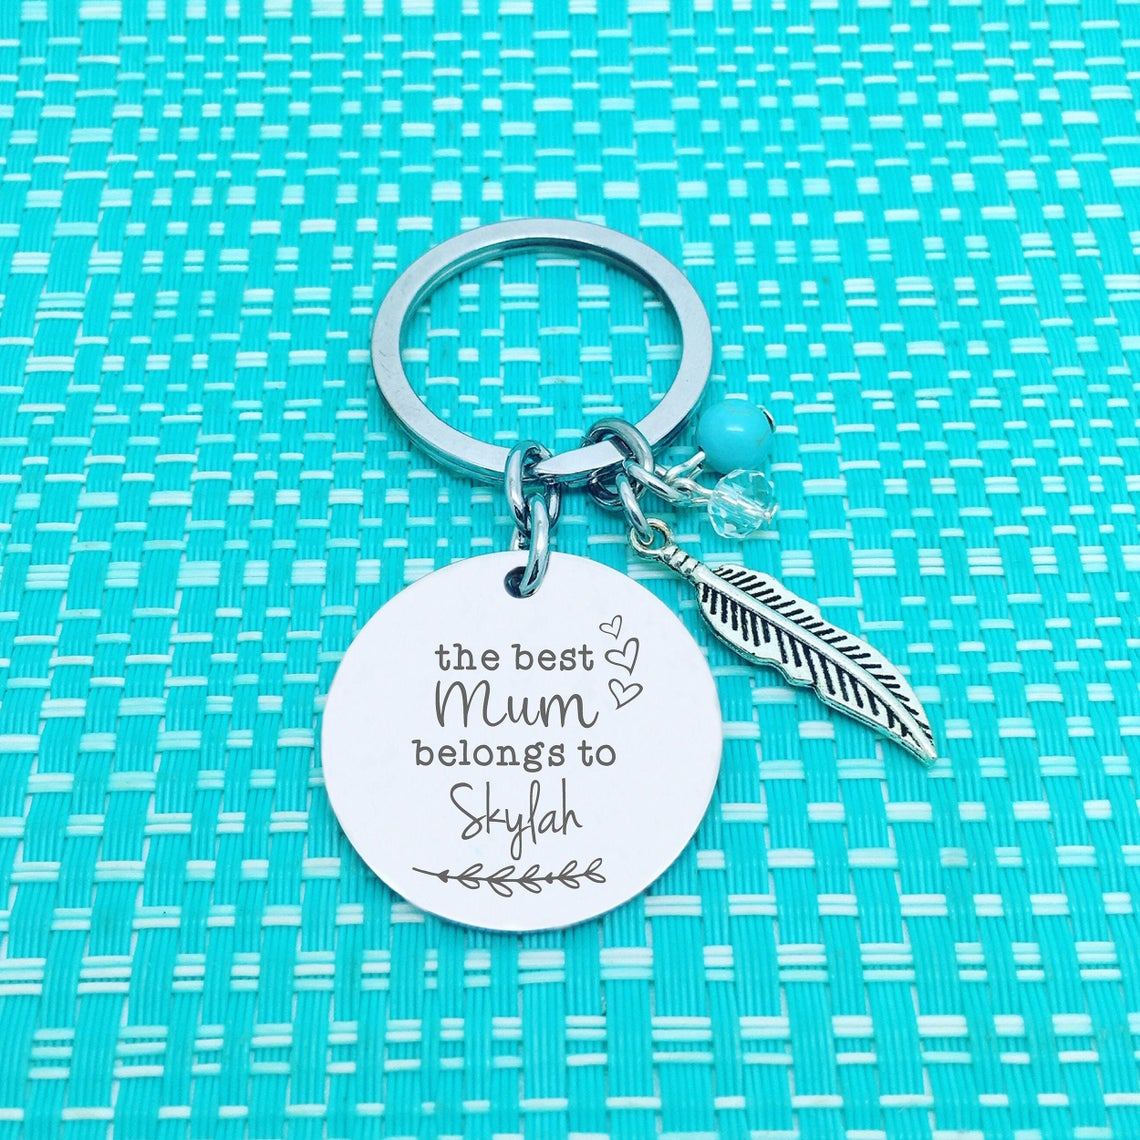 The Best Mum Belongs To Personalised Keyring (Change Mum to another name of your choosing)